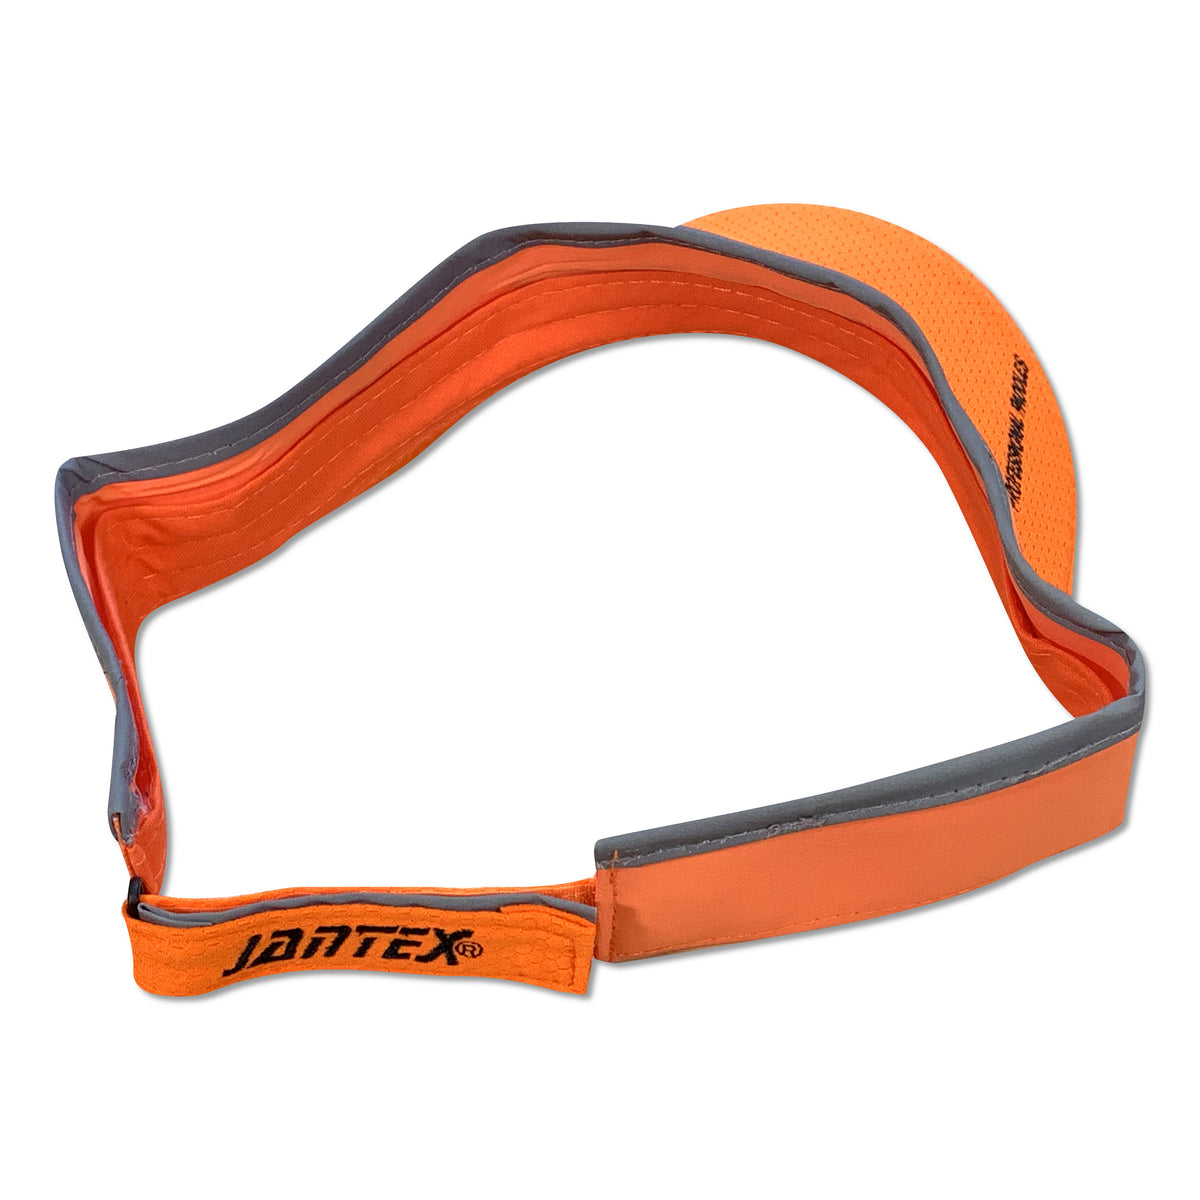 Jantex Visor orange bak